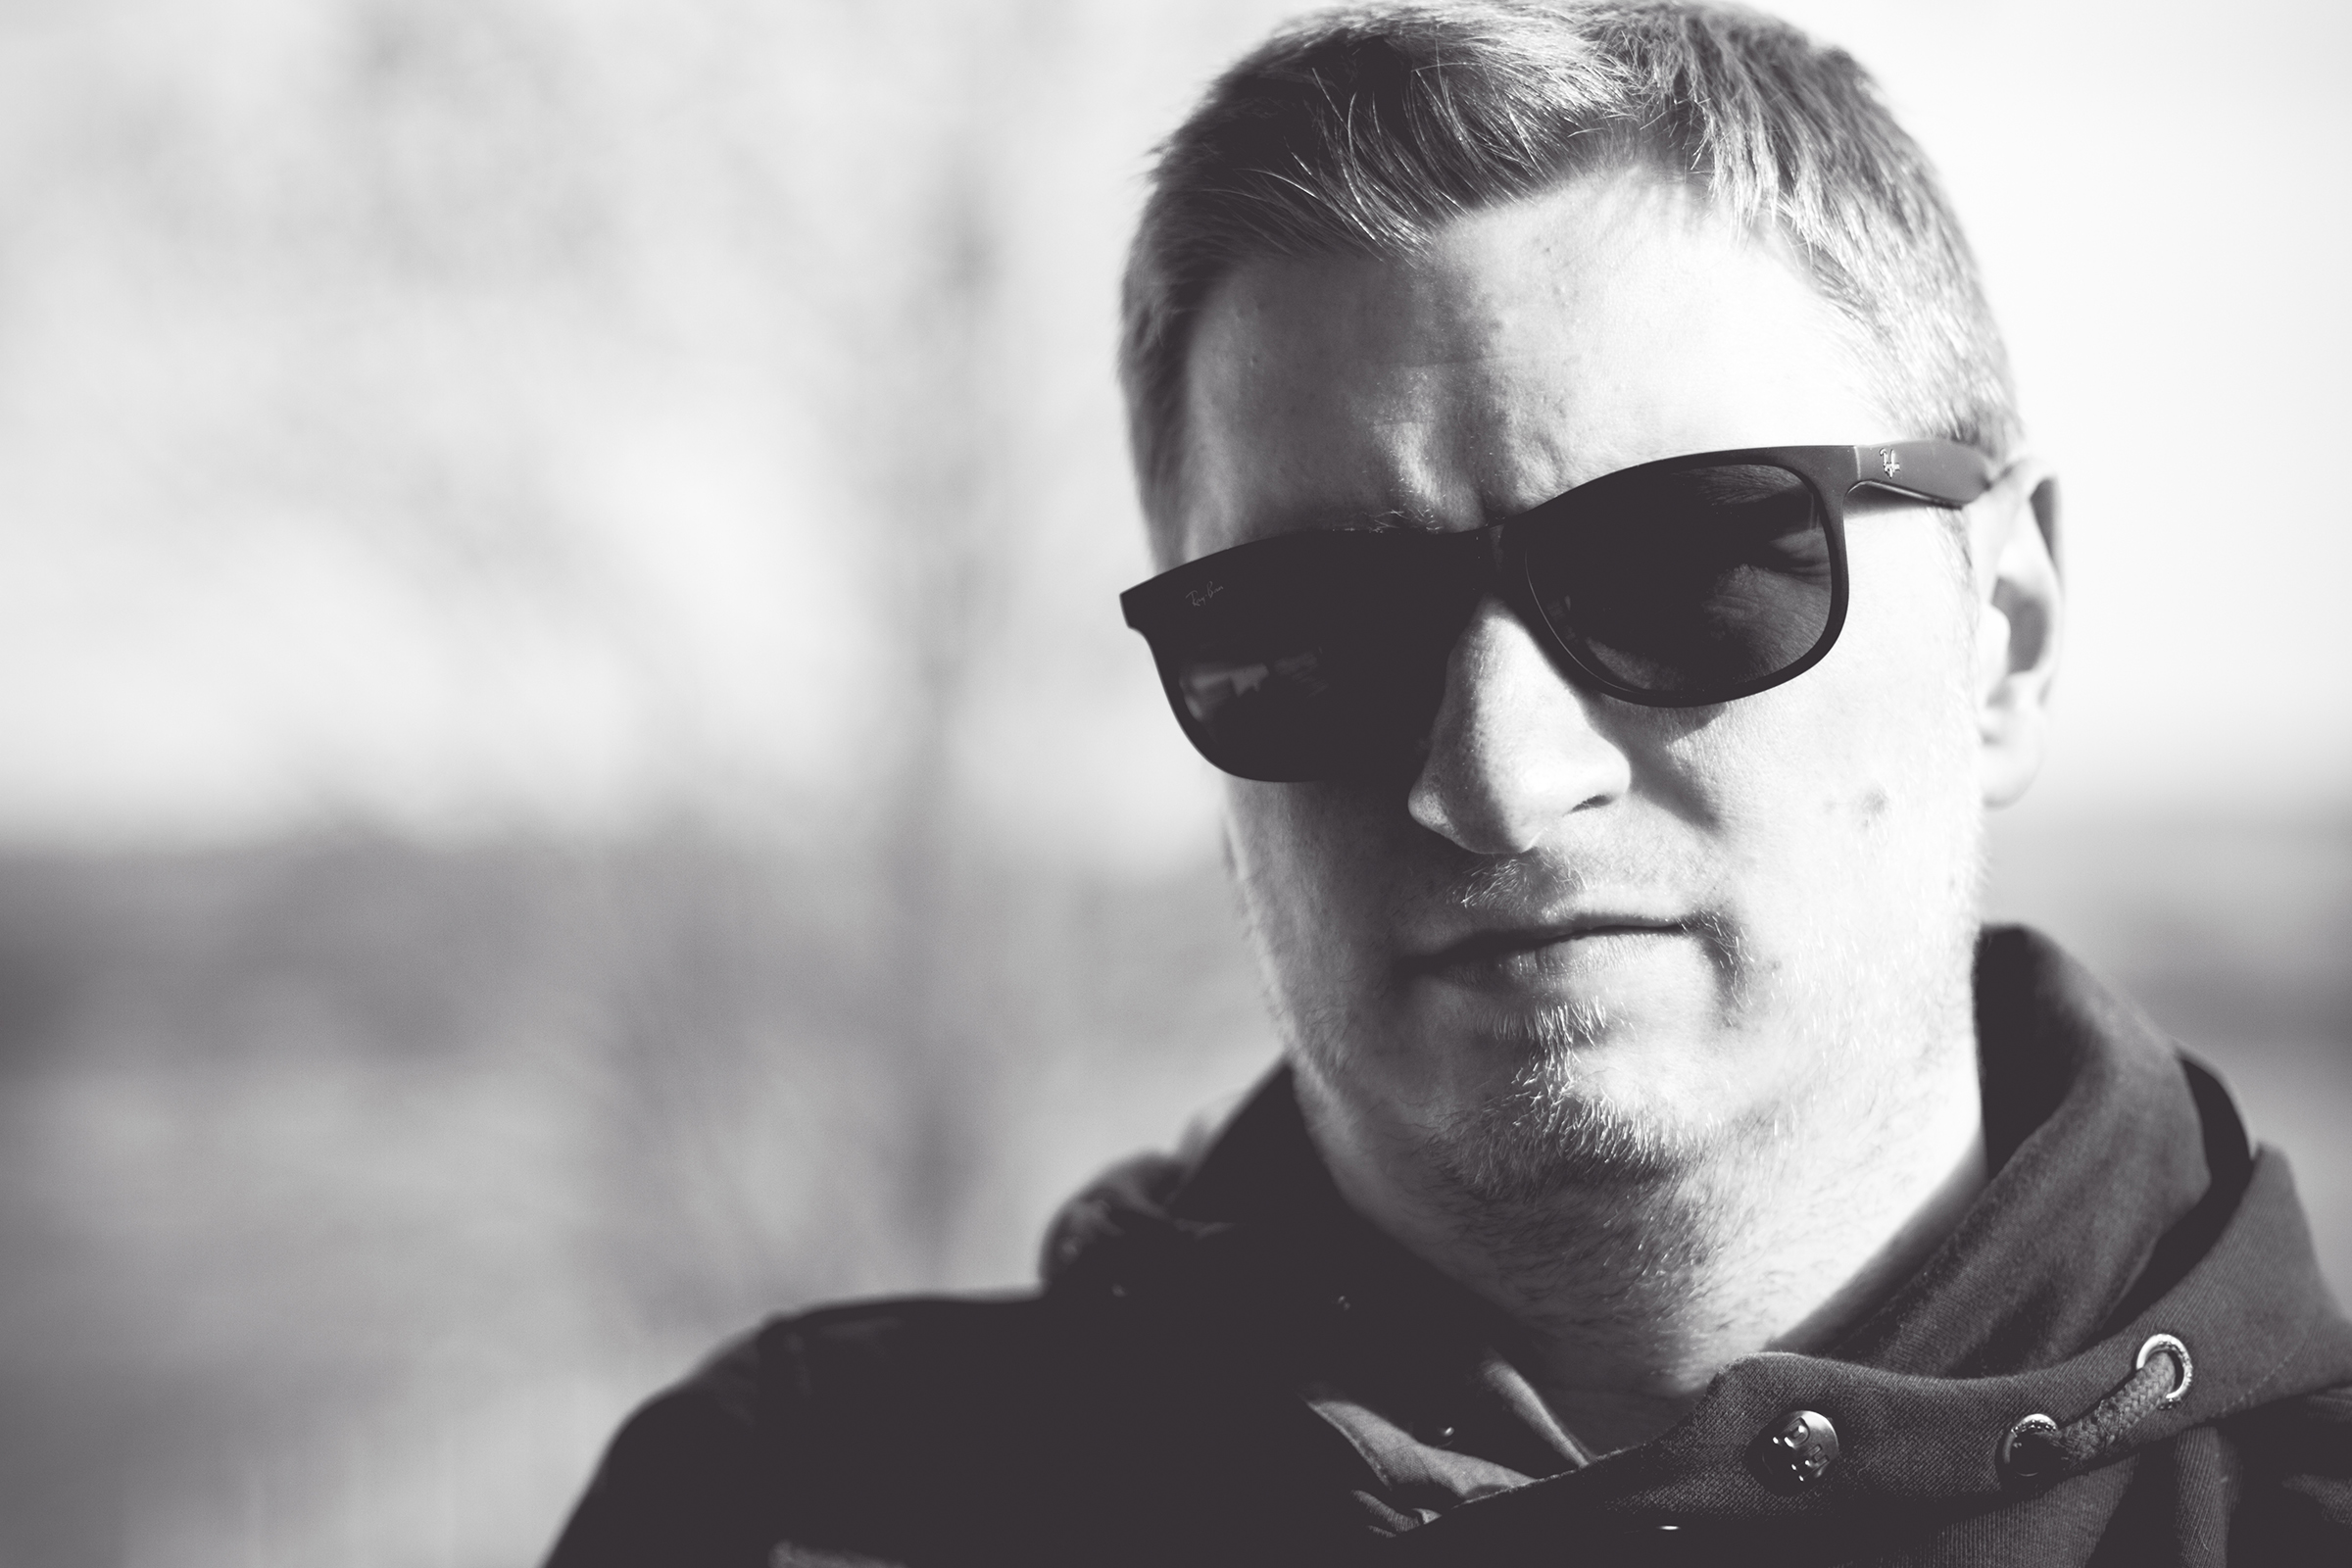 man, male, self, selfpic, selfportrait, sunglasses, outdoor songquotes © André Schunert